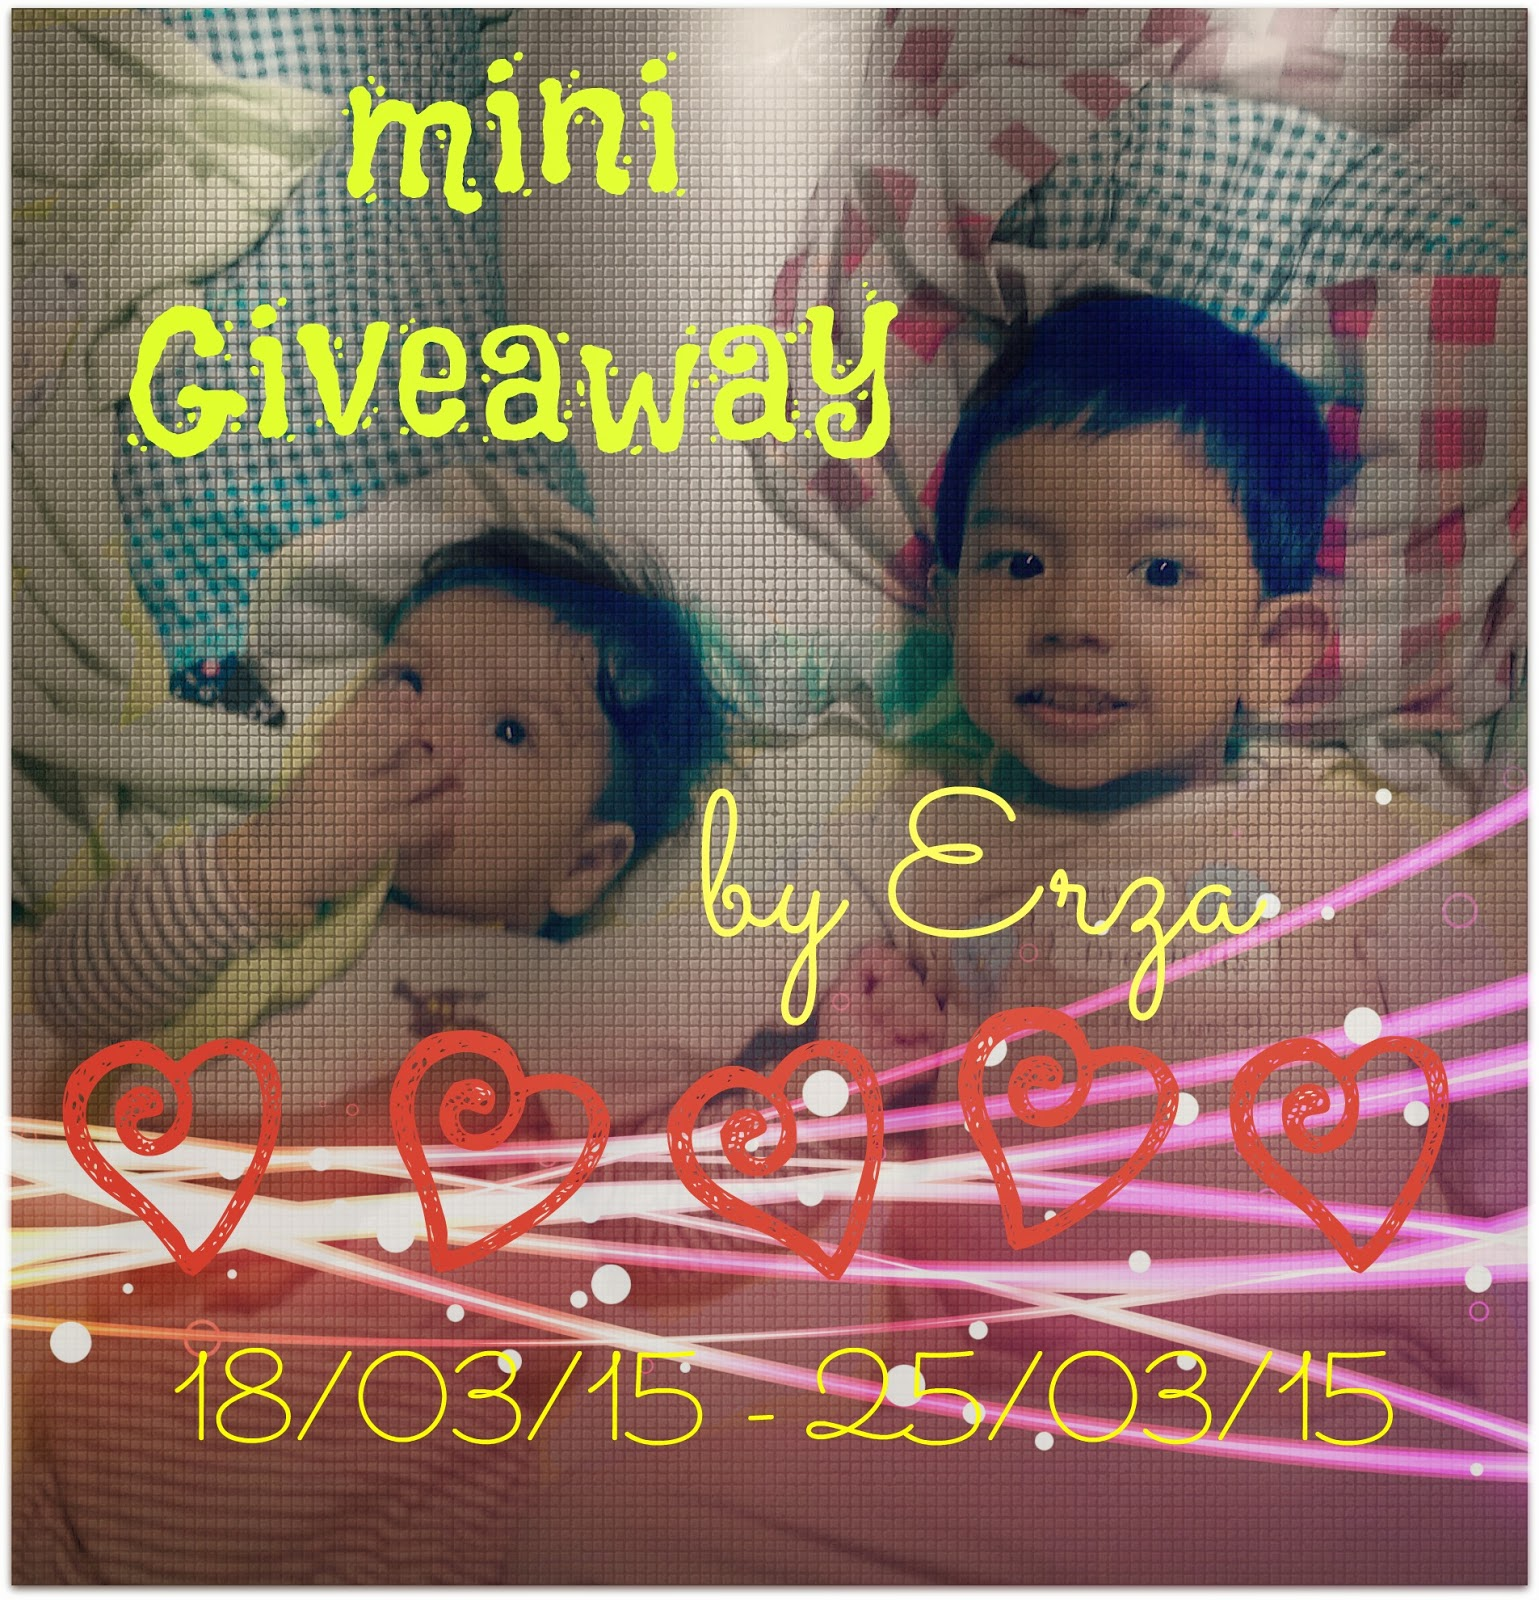 http://eirza.blogspot.com/2015/03/mini-giveaway-by-erza.htm